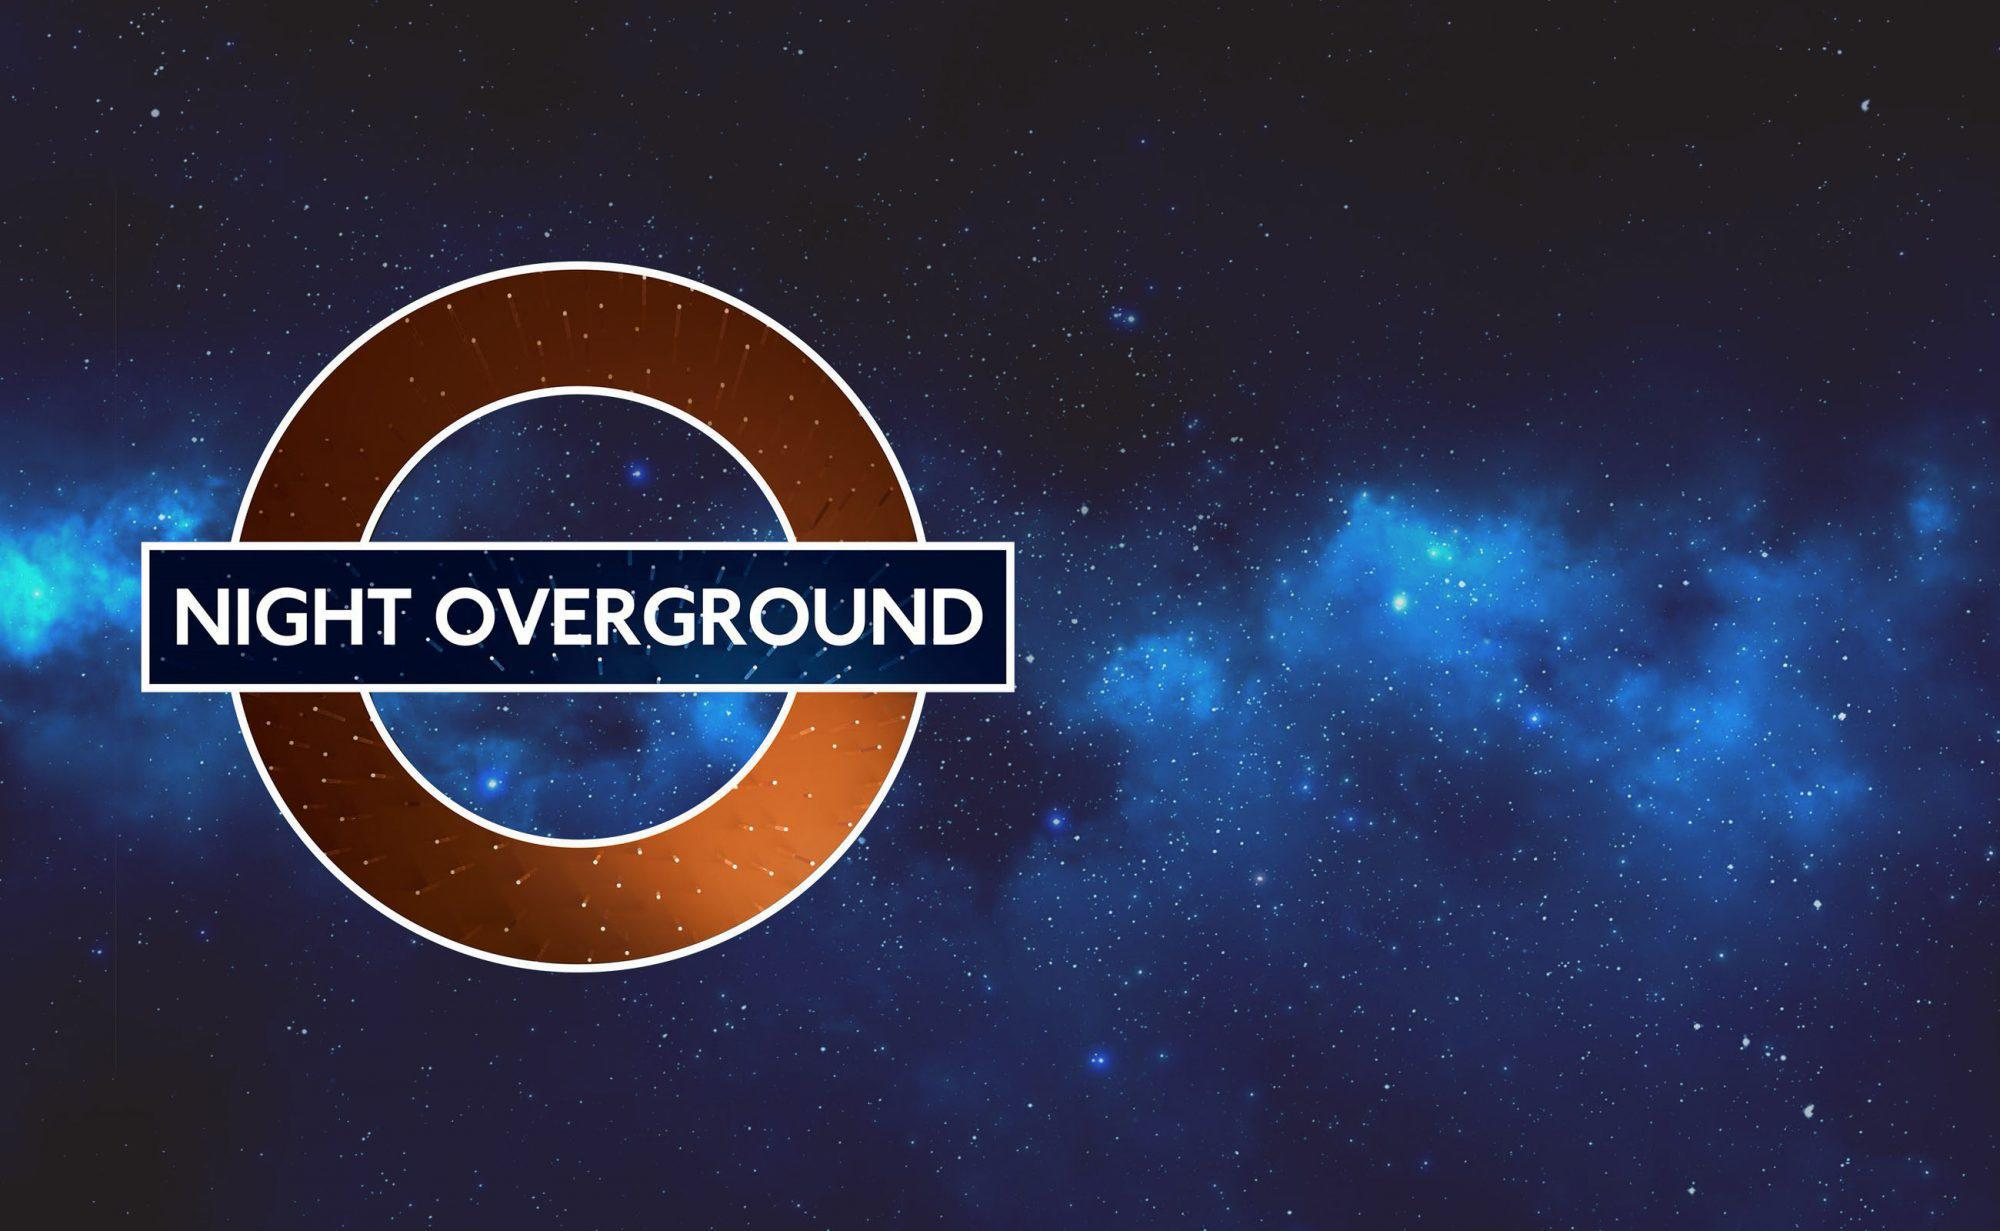 Night Overground roundels